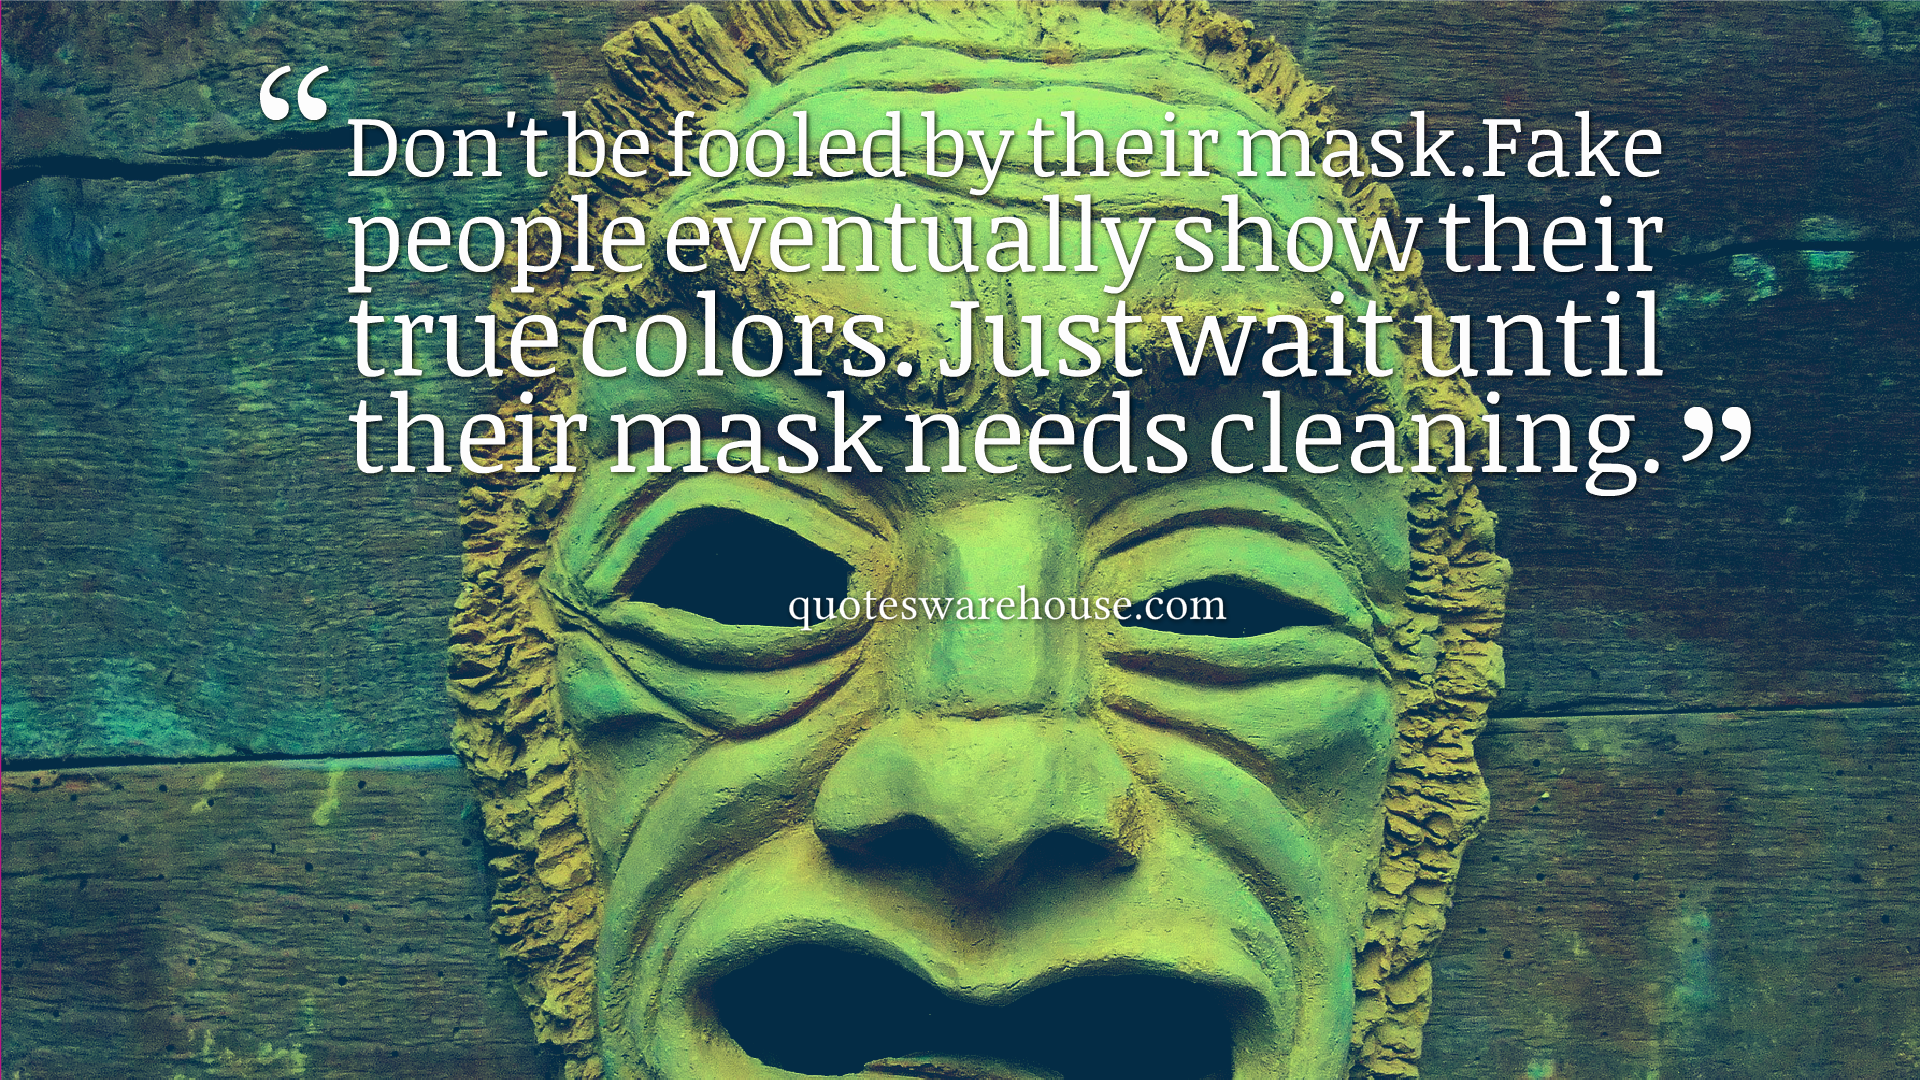 Fooled Mask.fake People Eventually Show